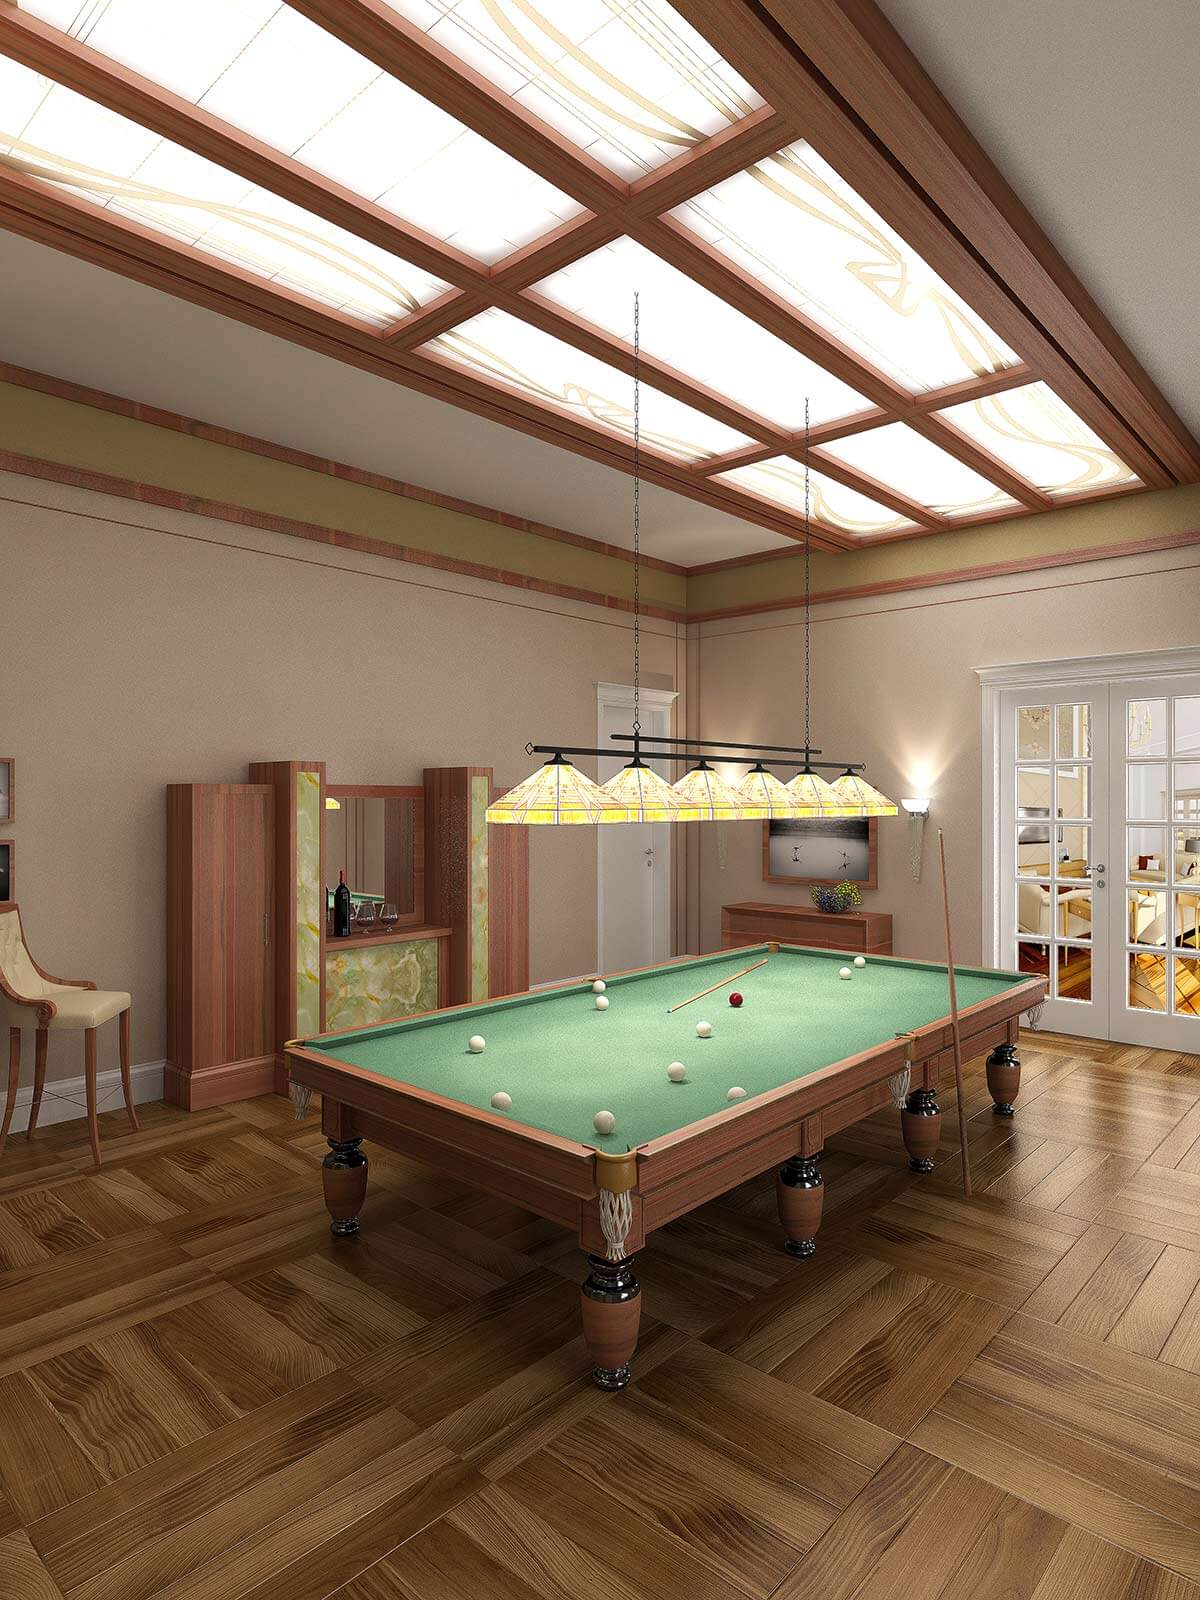 3D residential visualisation of billiard room, 3d modeling, London, UK